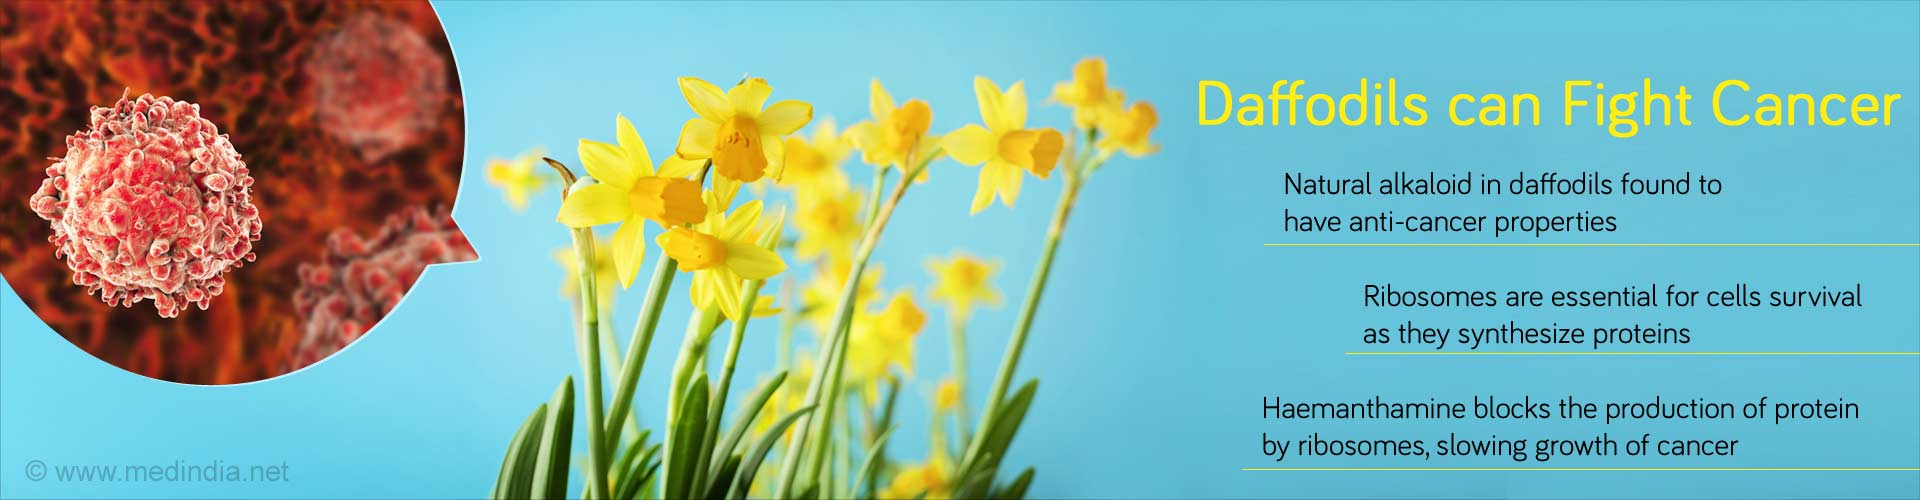 Daffodils can Fight Cancer